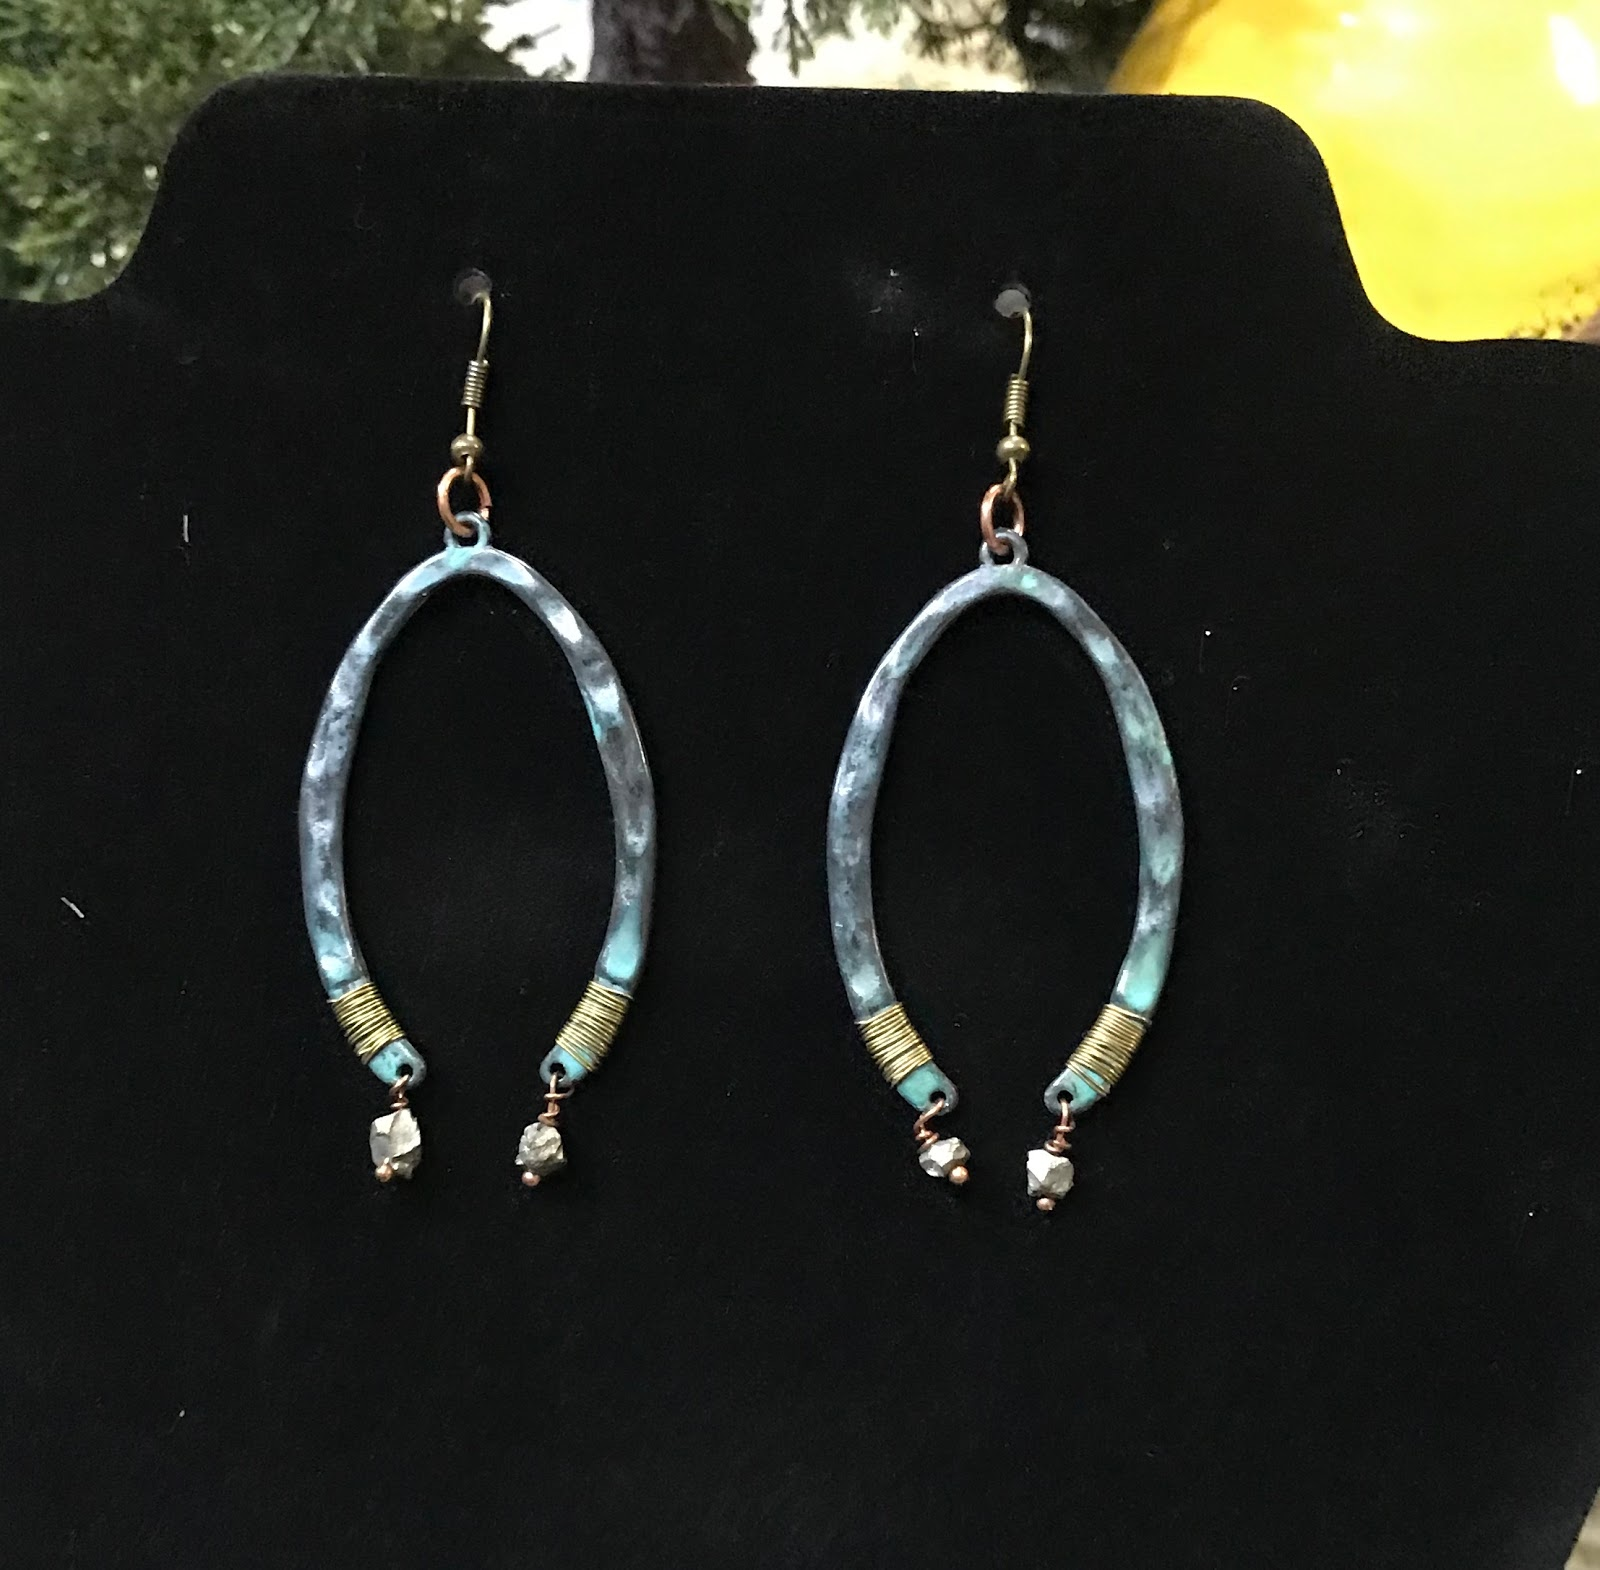 The complete look of the poetic spirit earrings made at home